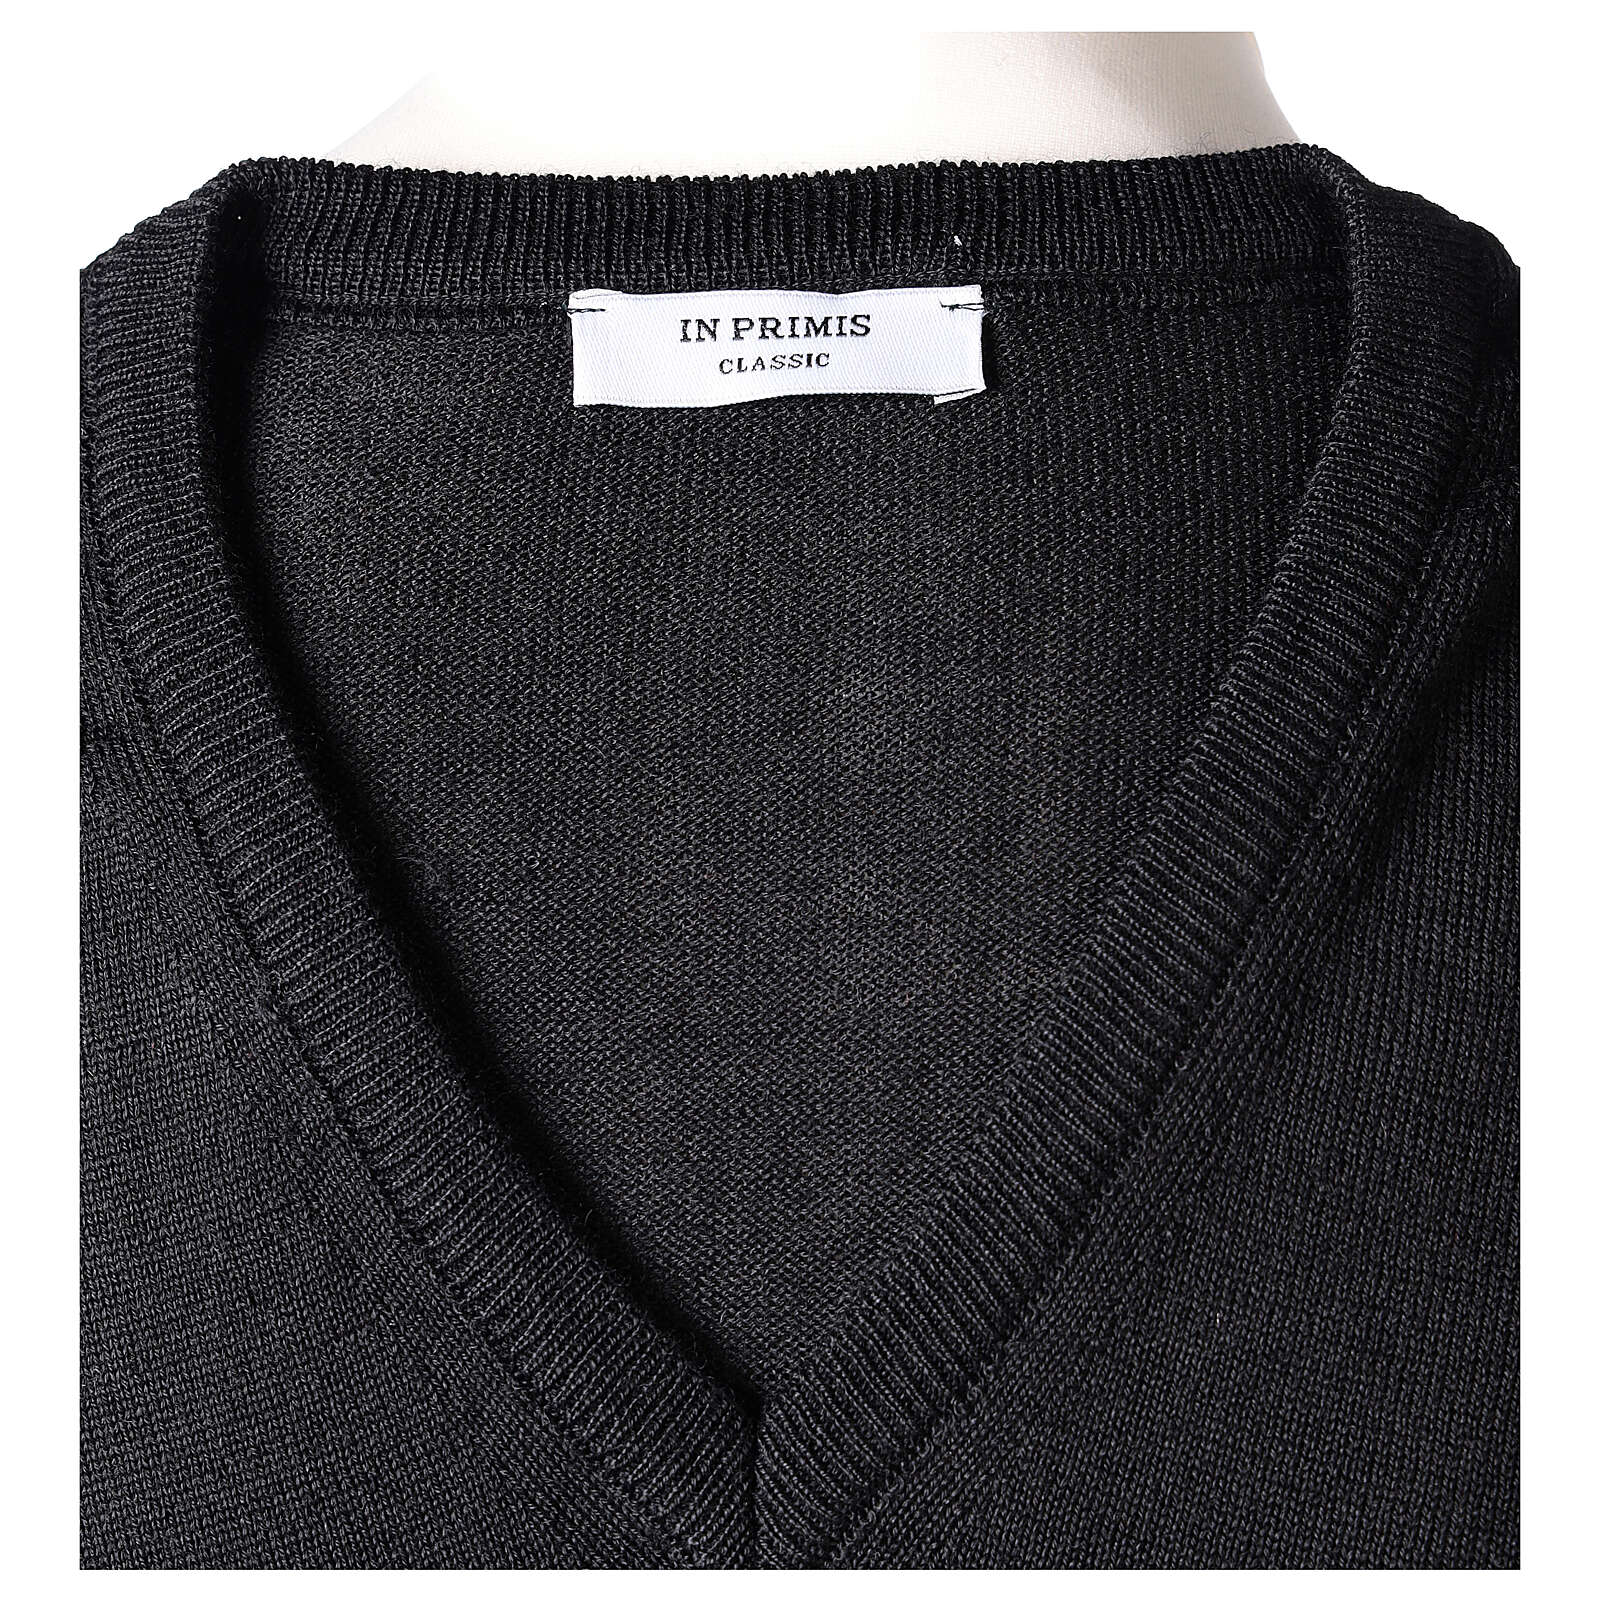 V-neck sleeveless clergy jumper black plain knit 50% merino wool 50% acrylic In Primis 4